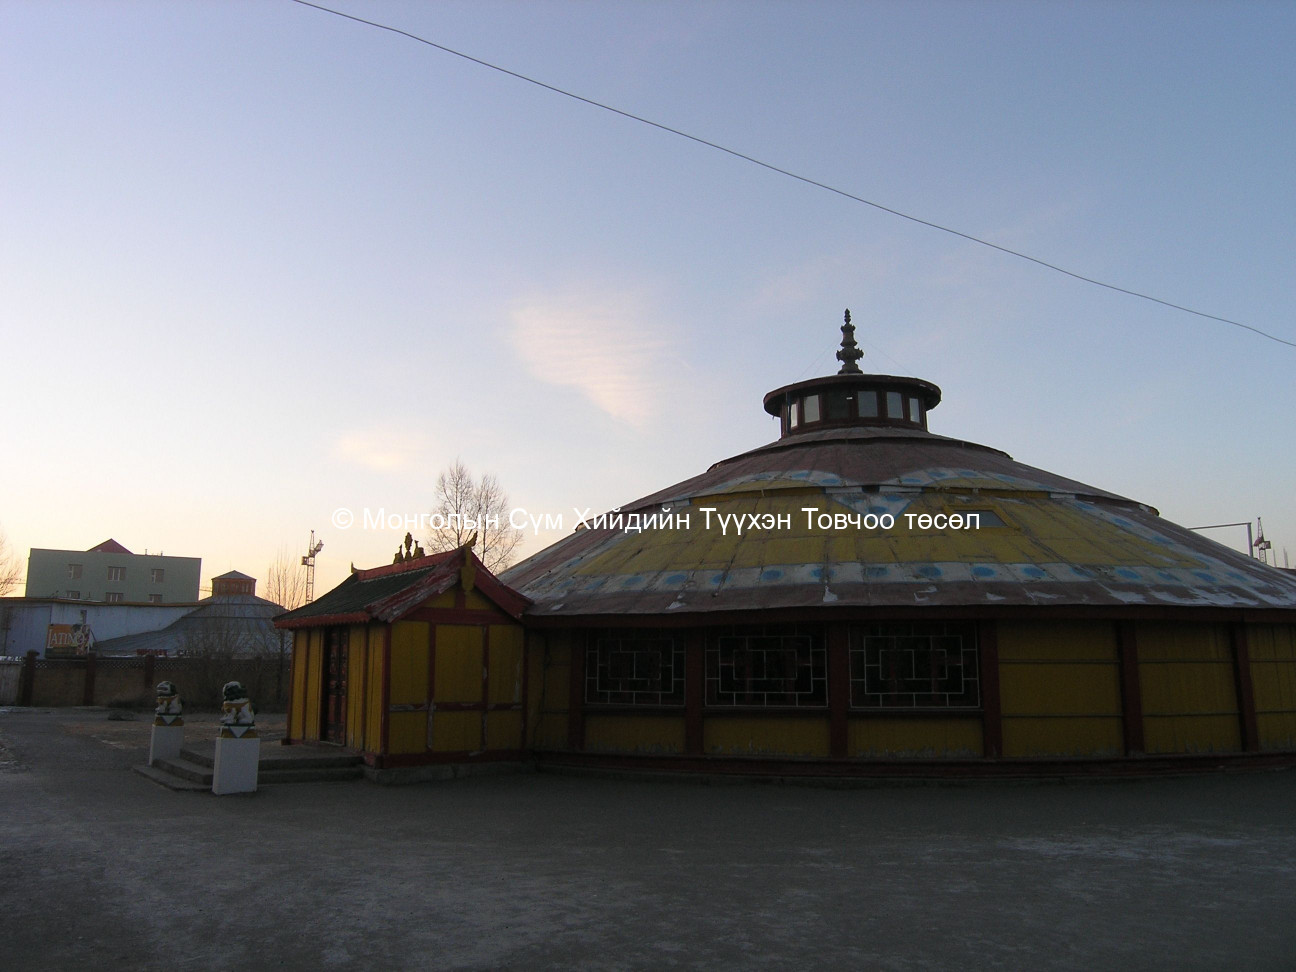 Remaining temple of Vangain aimag, present Tsogchi